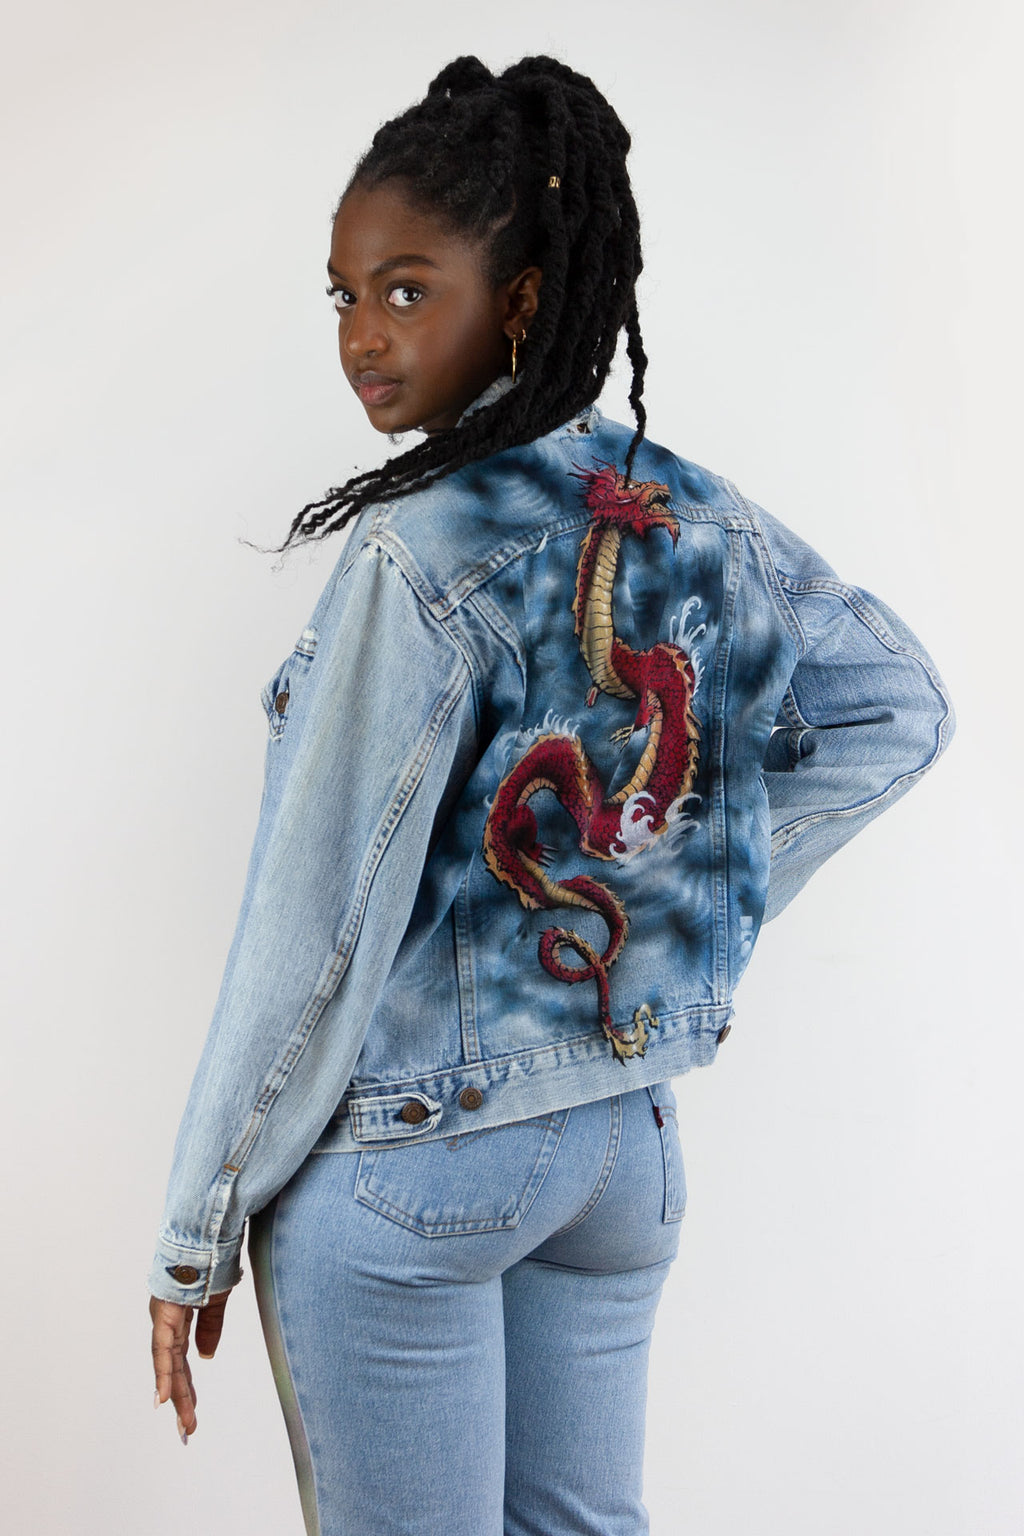 STORM DRAGON - Upcycled women's Levi's denim jacket